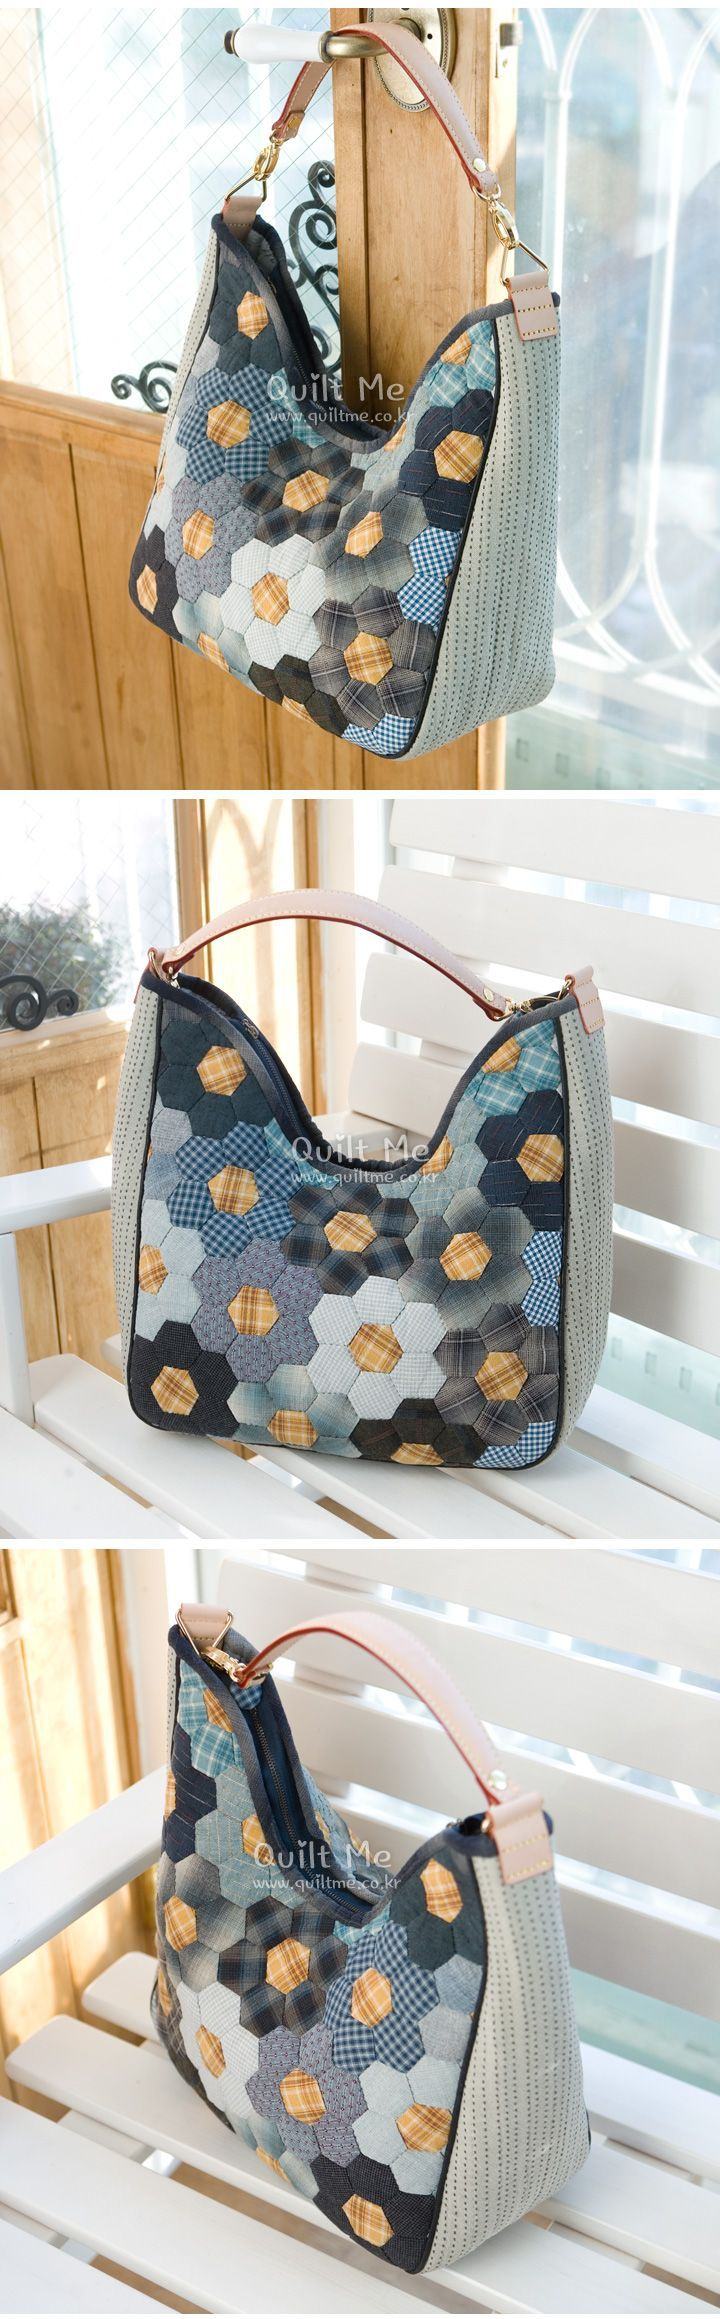 Bolsos de la web,sin moldes - Handbags online, without molds